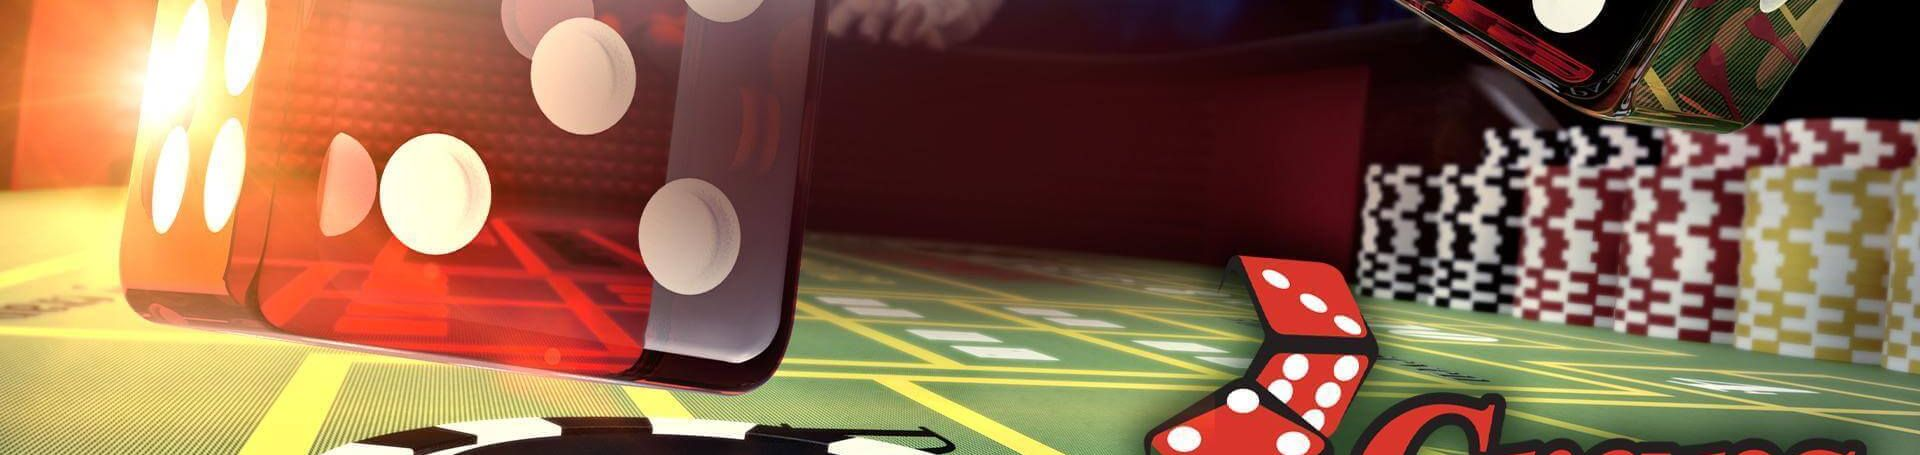 Play Online Craps for Real Money at Casino.com